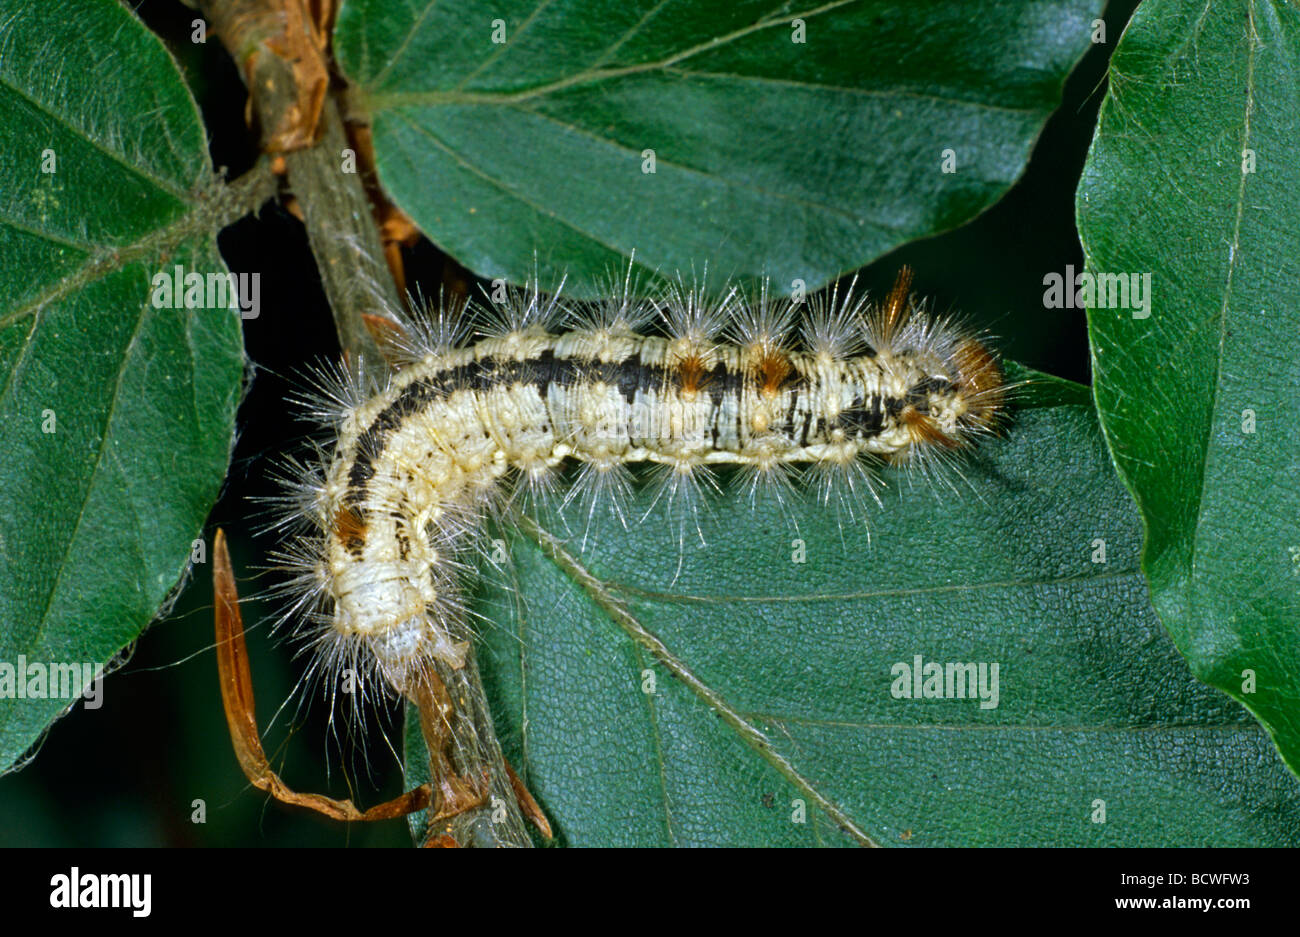 Nut-tree tussock (Colocasia coryli), caterpillar - Stock Image